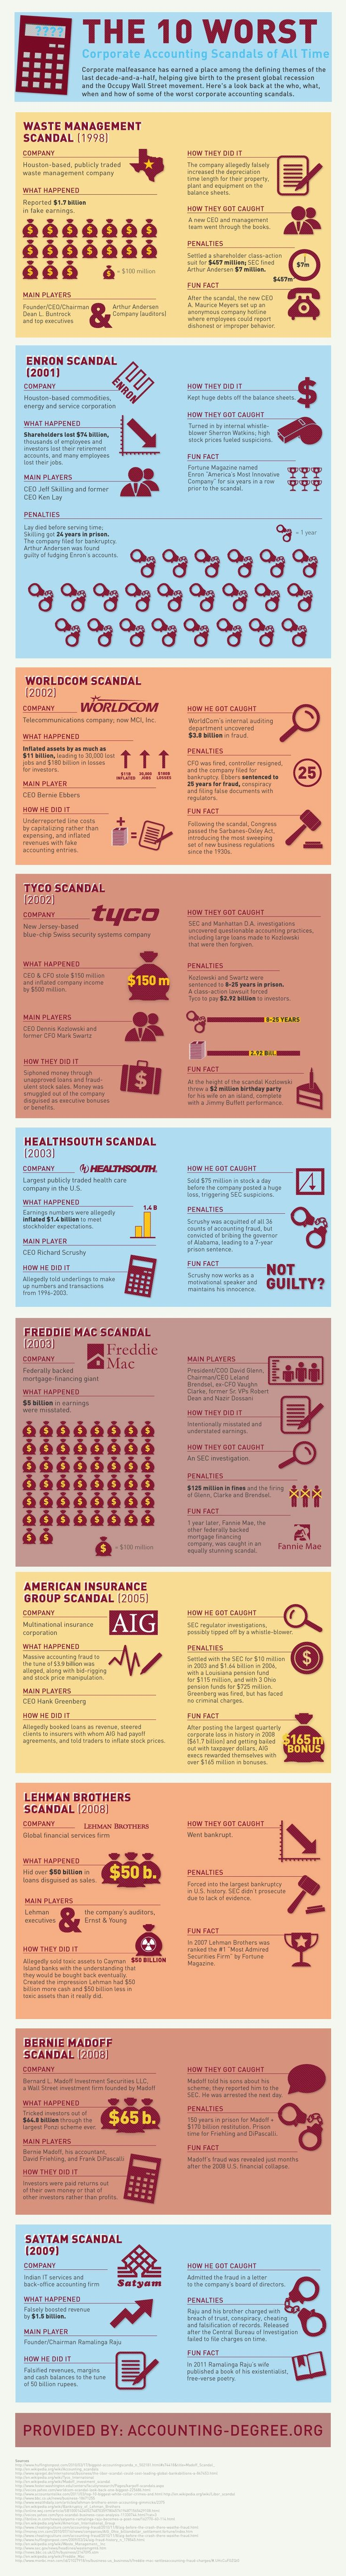 The 10 worst corporate accounting scandals of all time #infografia #infographic